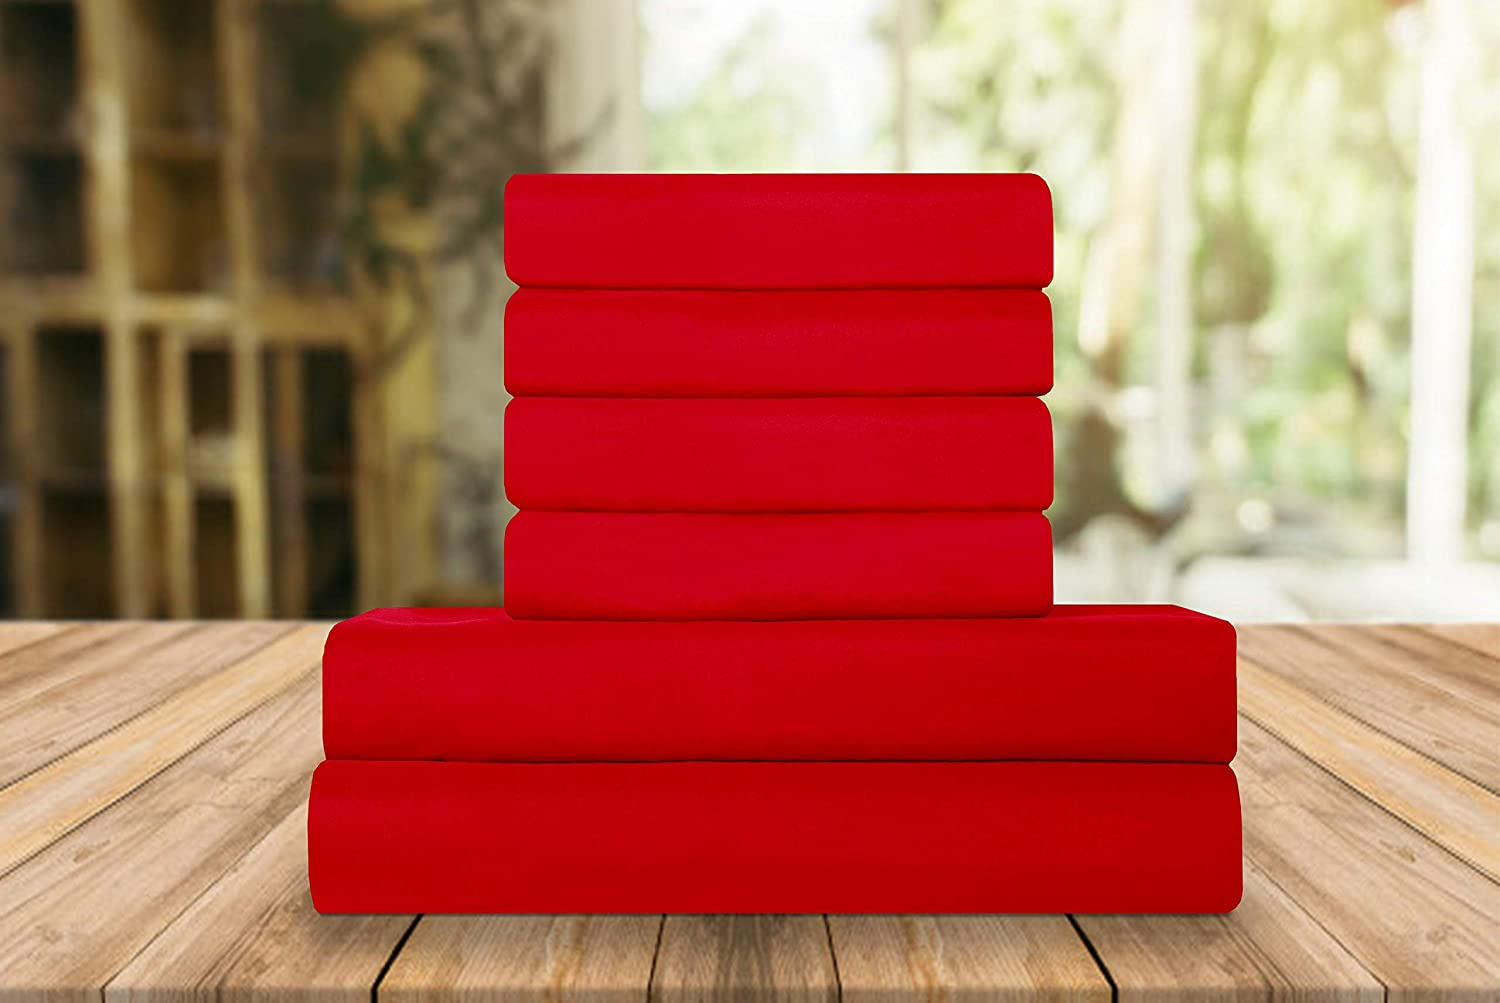 Elegant Comfort Luxury Soft Bed Sheets 1500 Thread Count Percale Egyptian Quality Softness Wrinkle and Fade Resistant (6-Piece) Bedding Set, Queen, Candy Apple Red